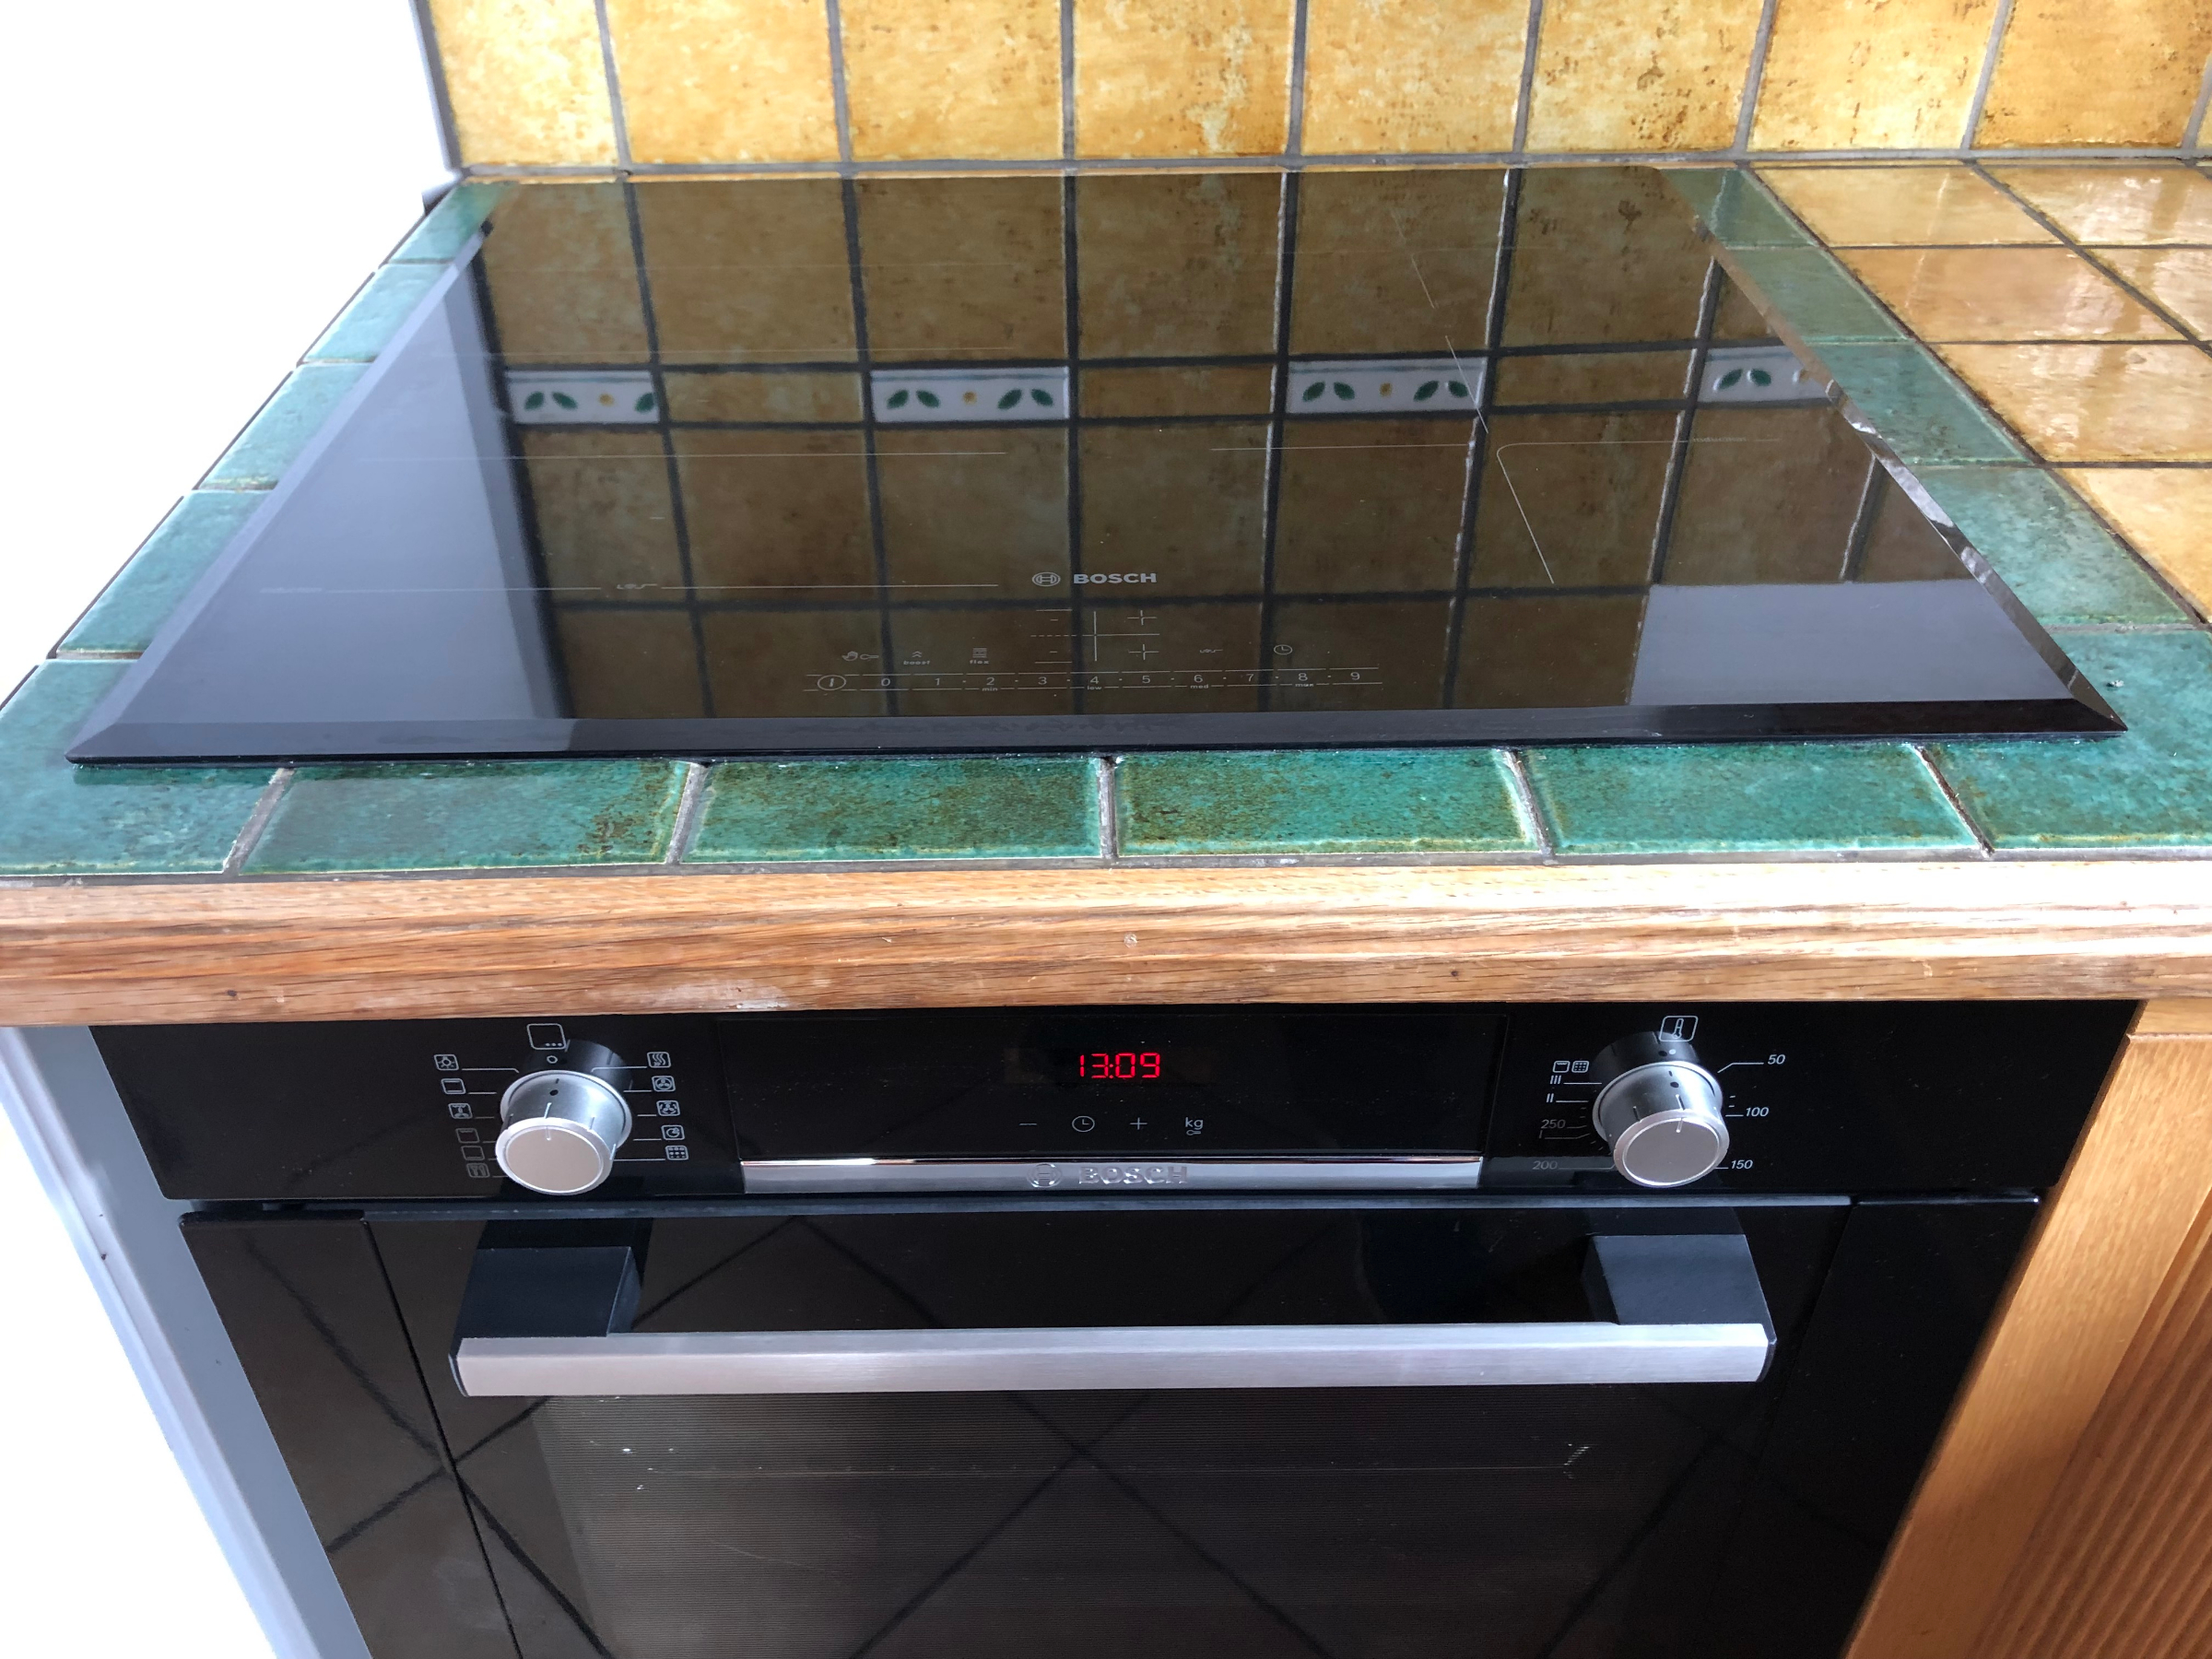 Bosch Oven And Induction Hob